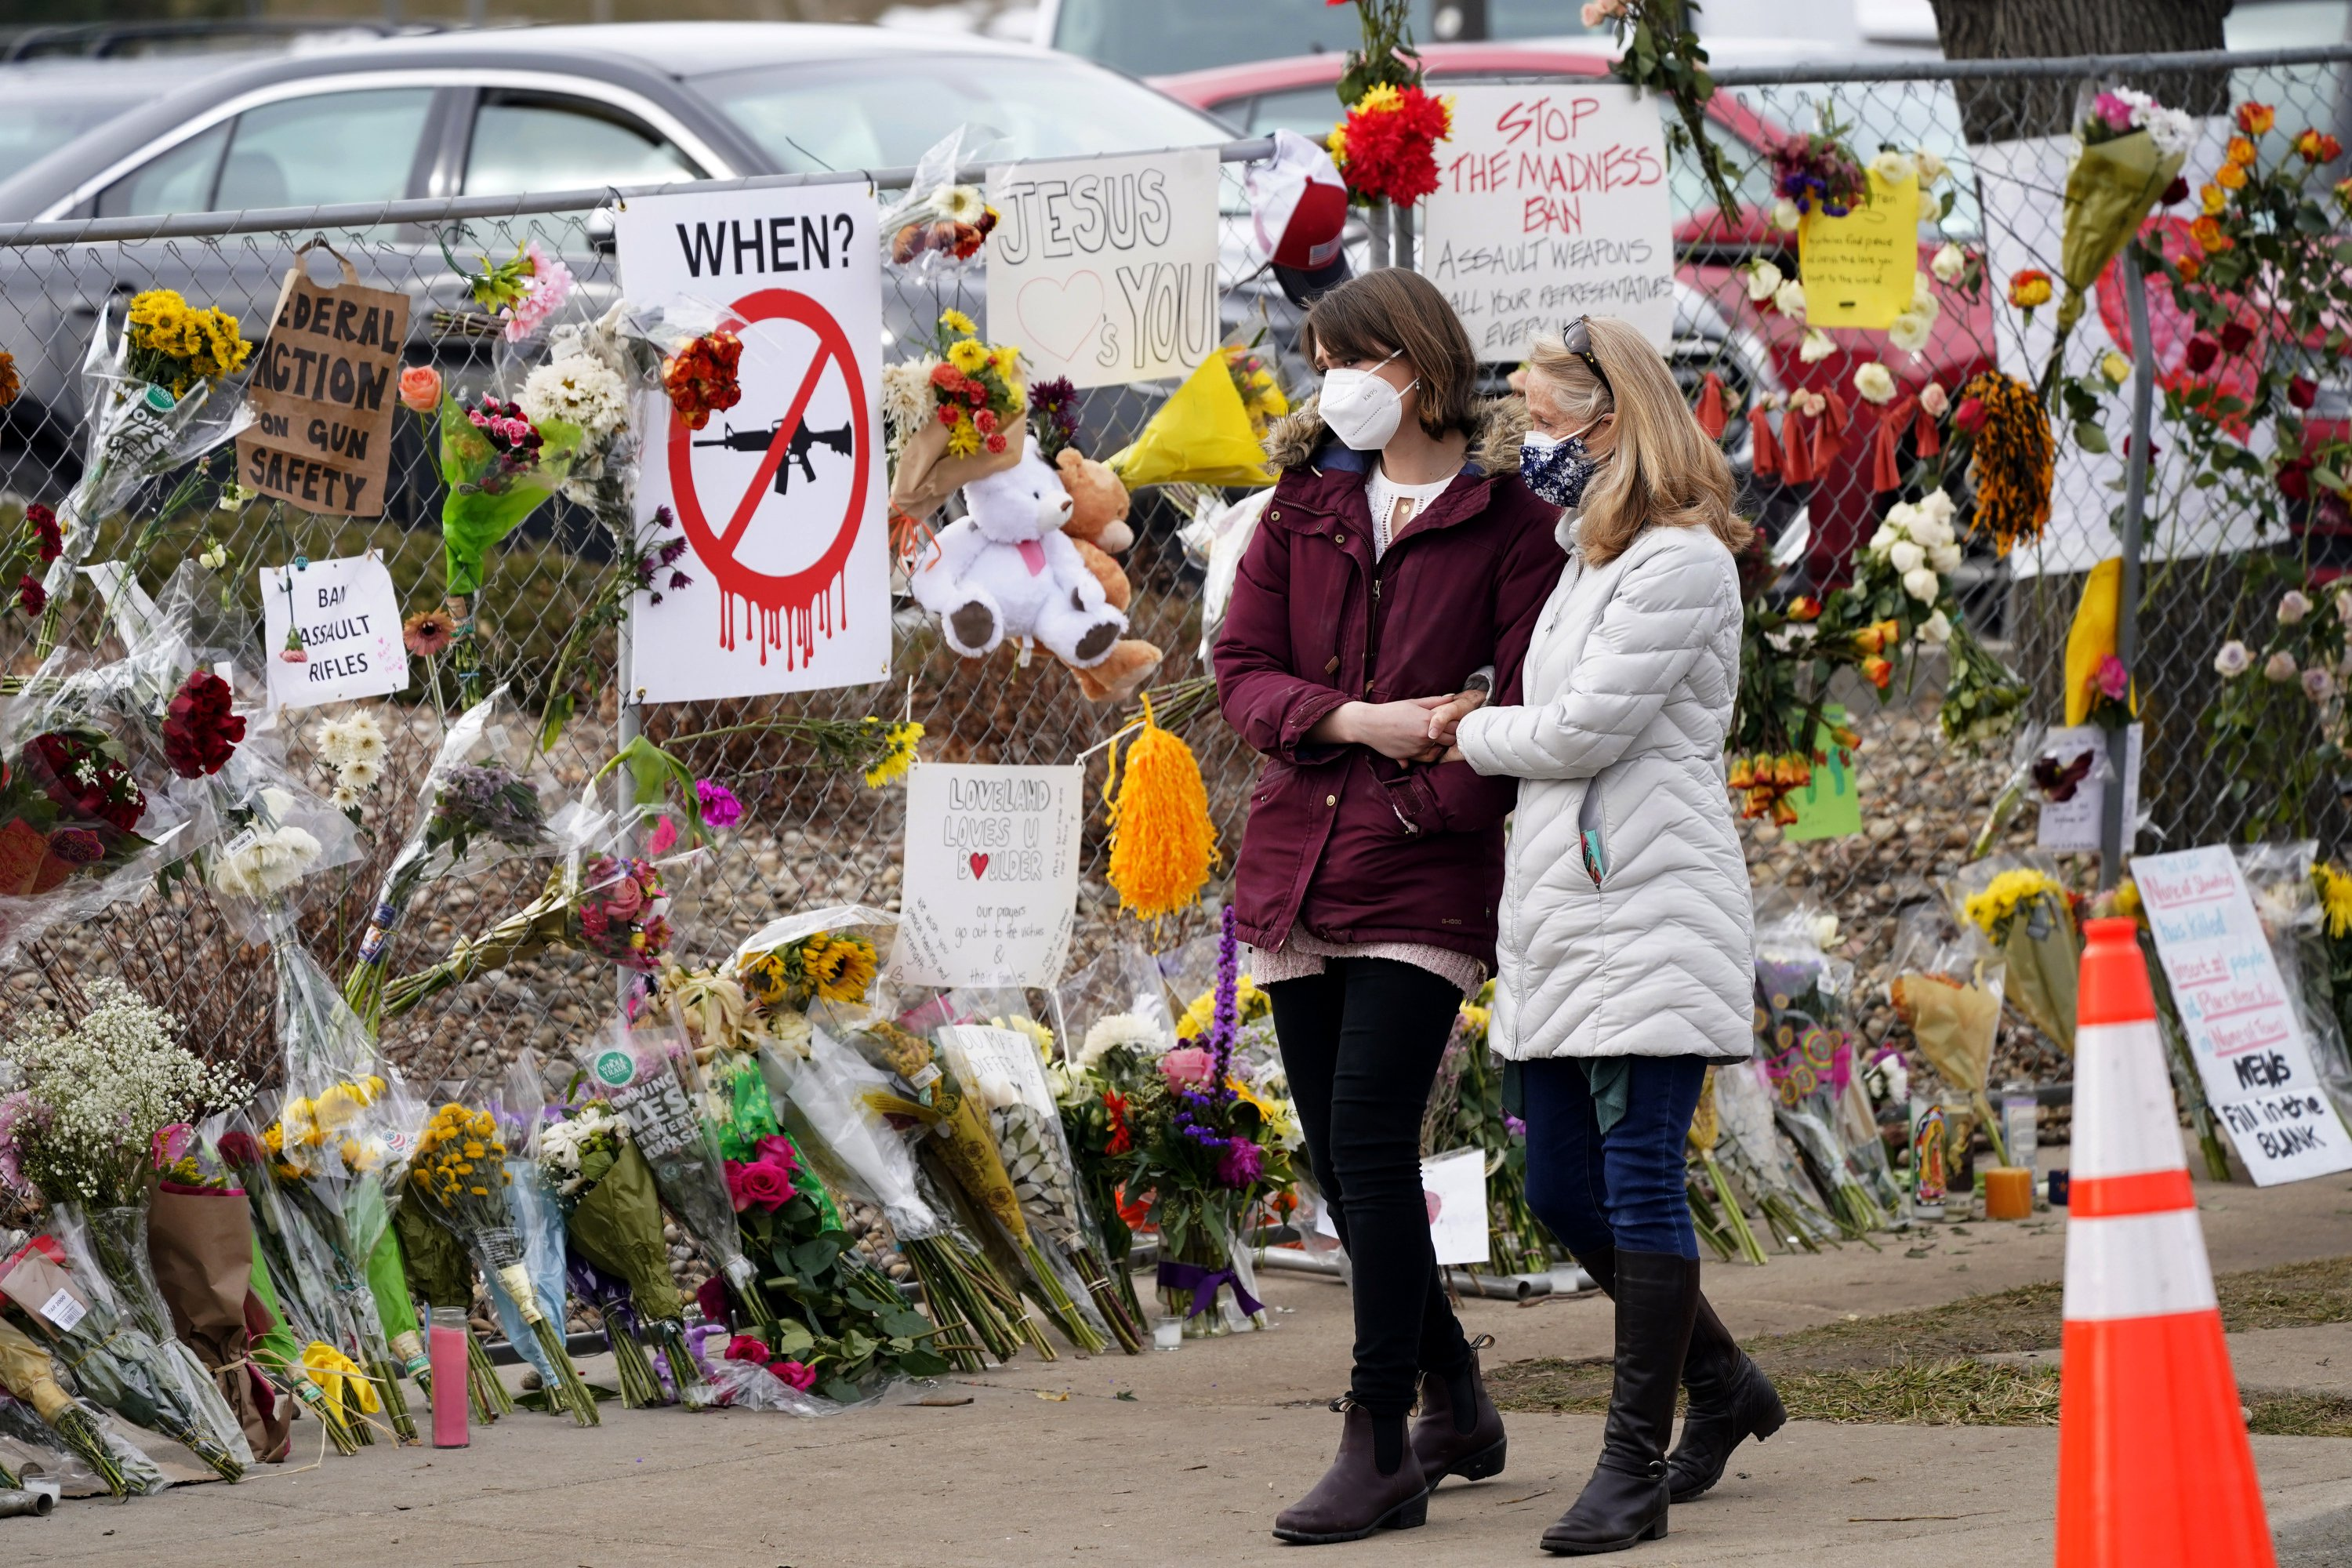 Lawyer: Colorado shooting suspect needs mental health review – Associated Press